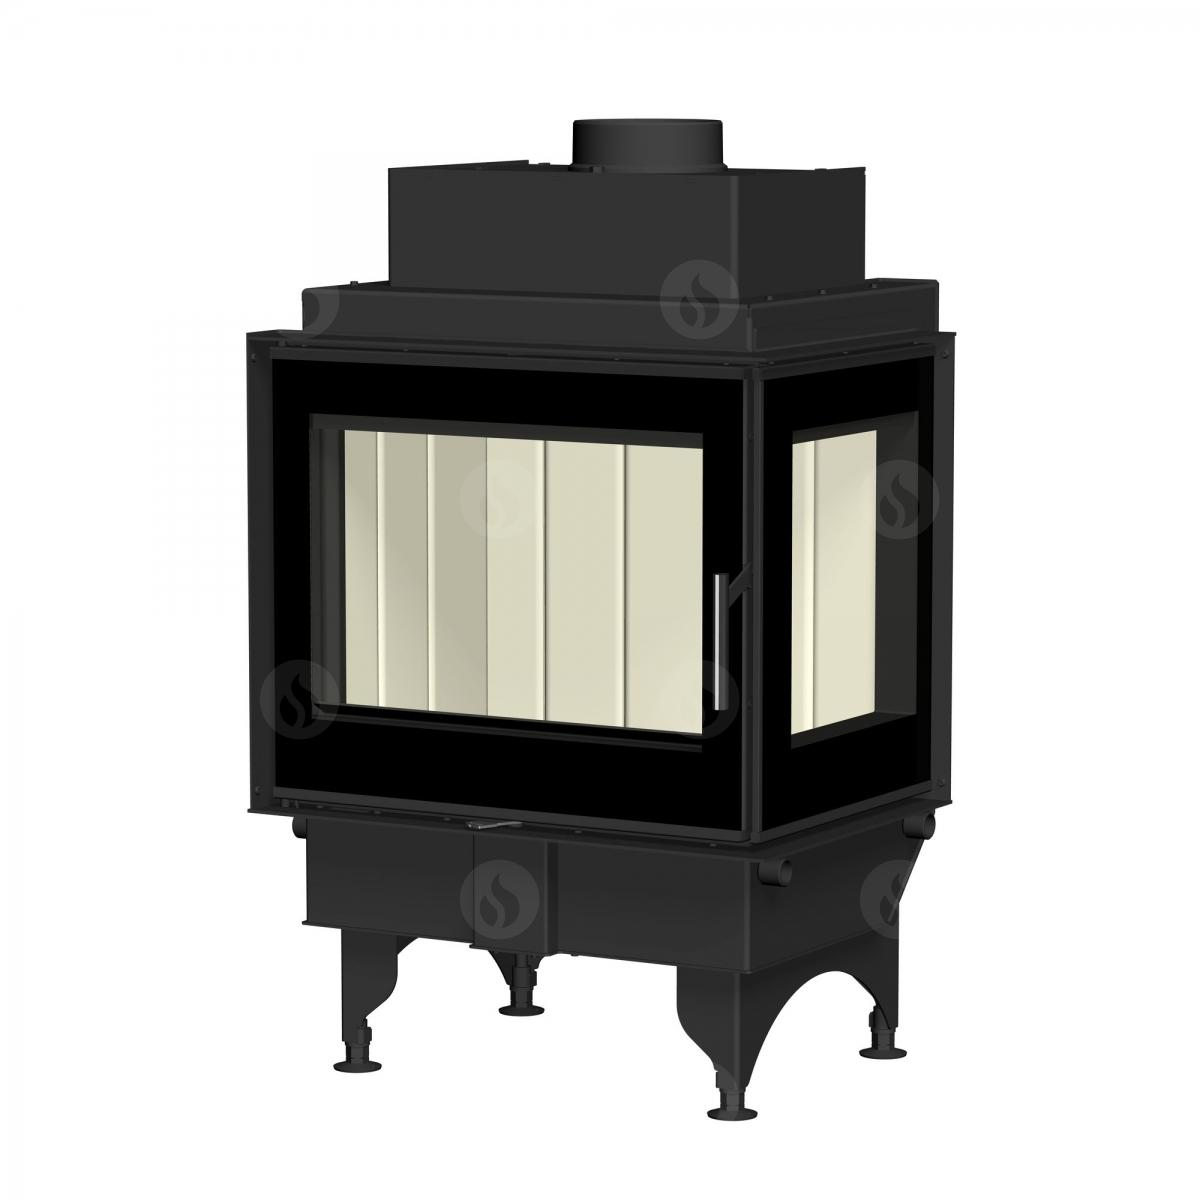 KV 6.6.3 L/R - fireplace insert with glazed side wall